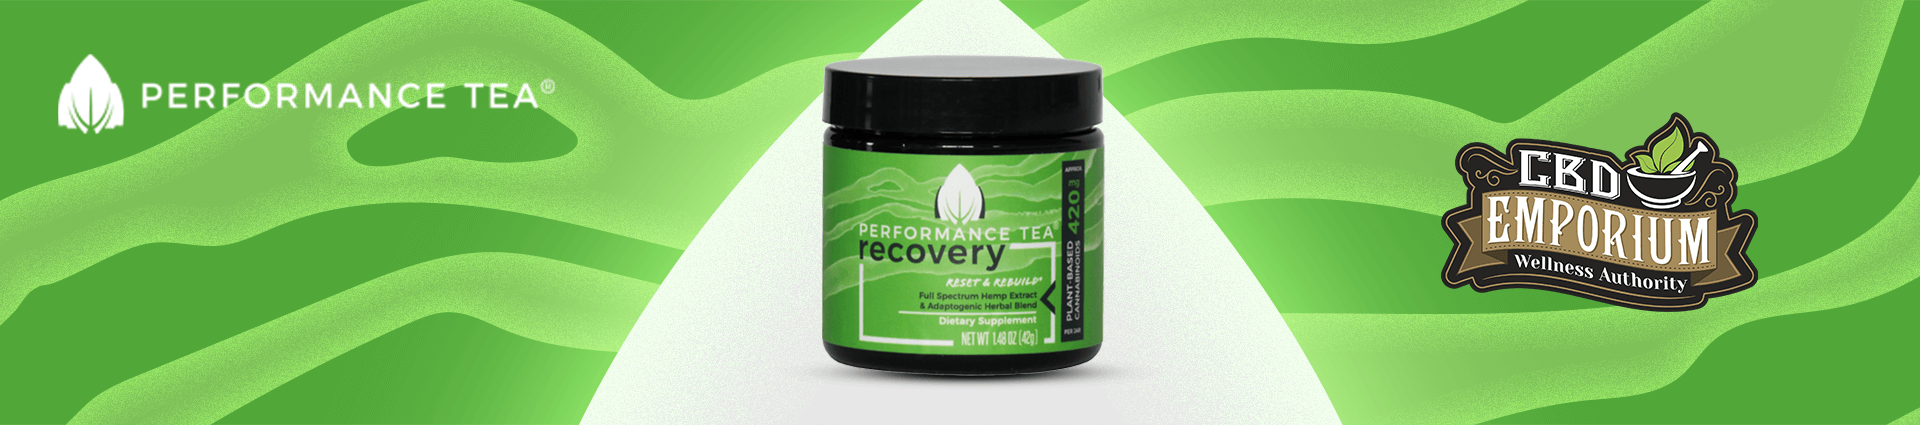 Recovery Instant CBD Blend from Performance Tea